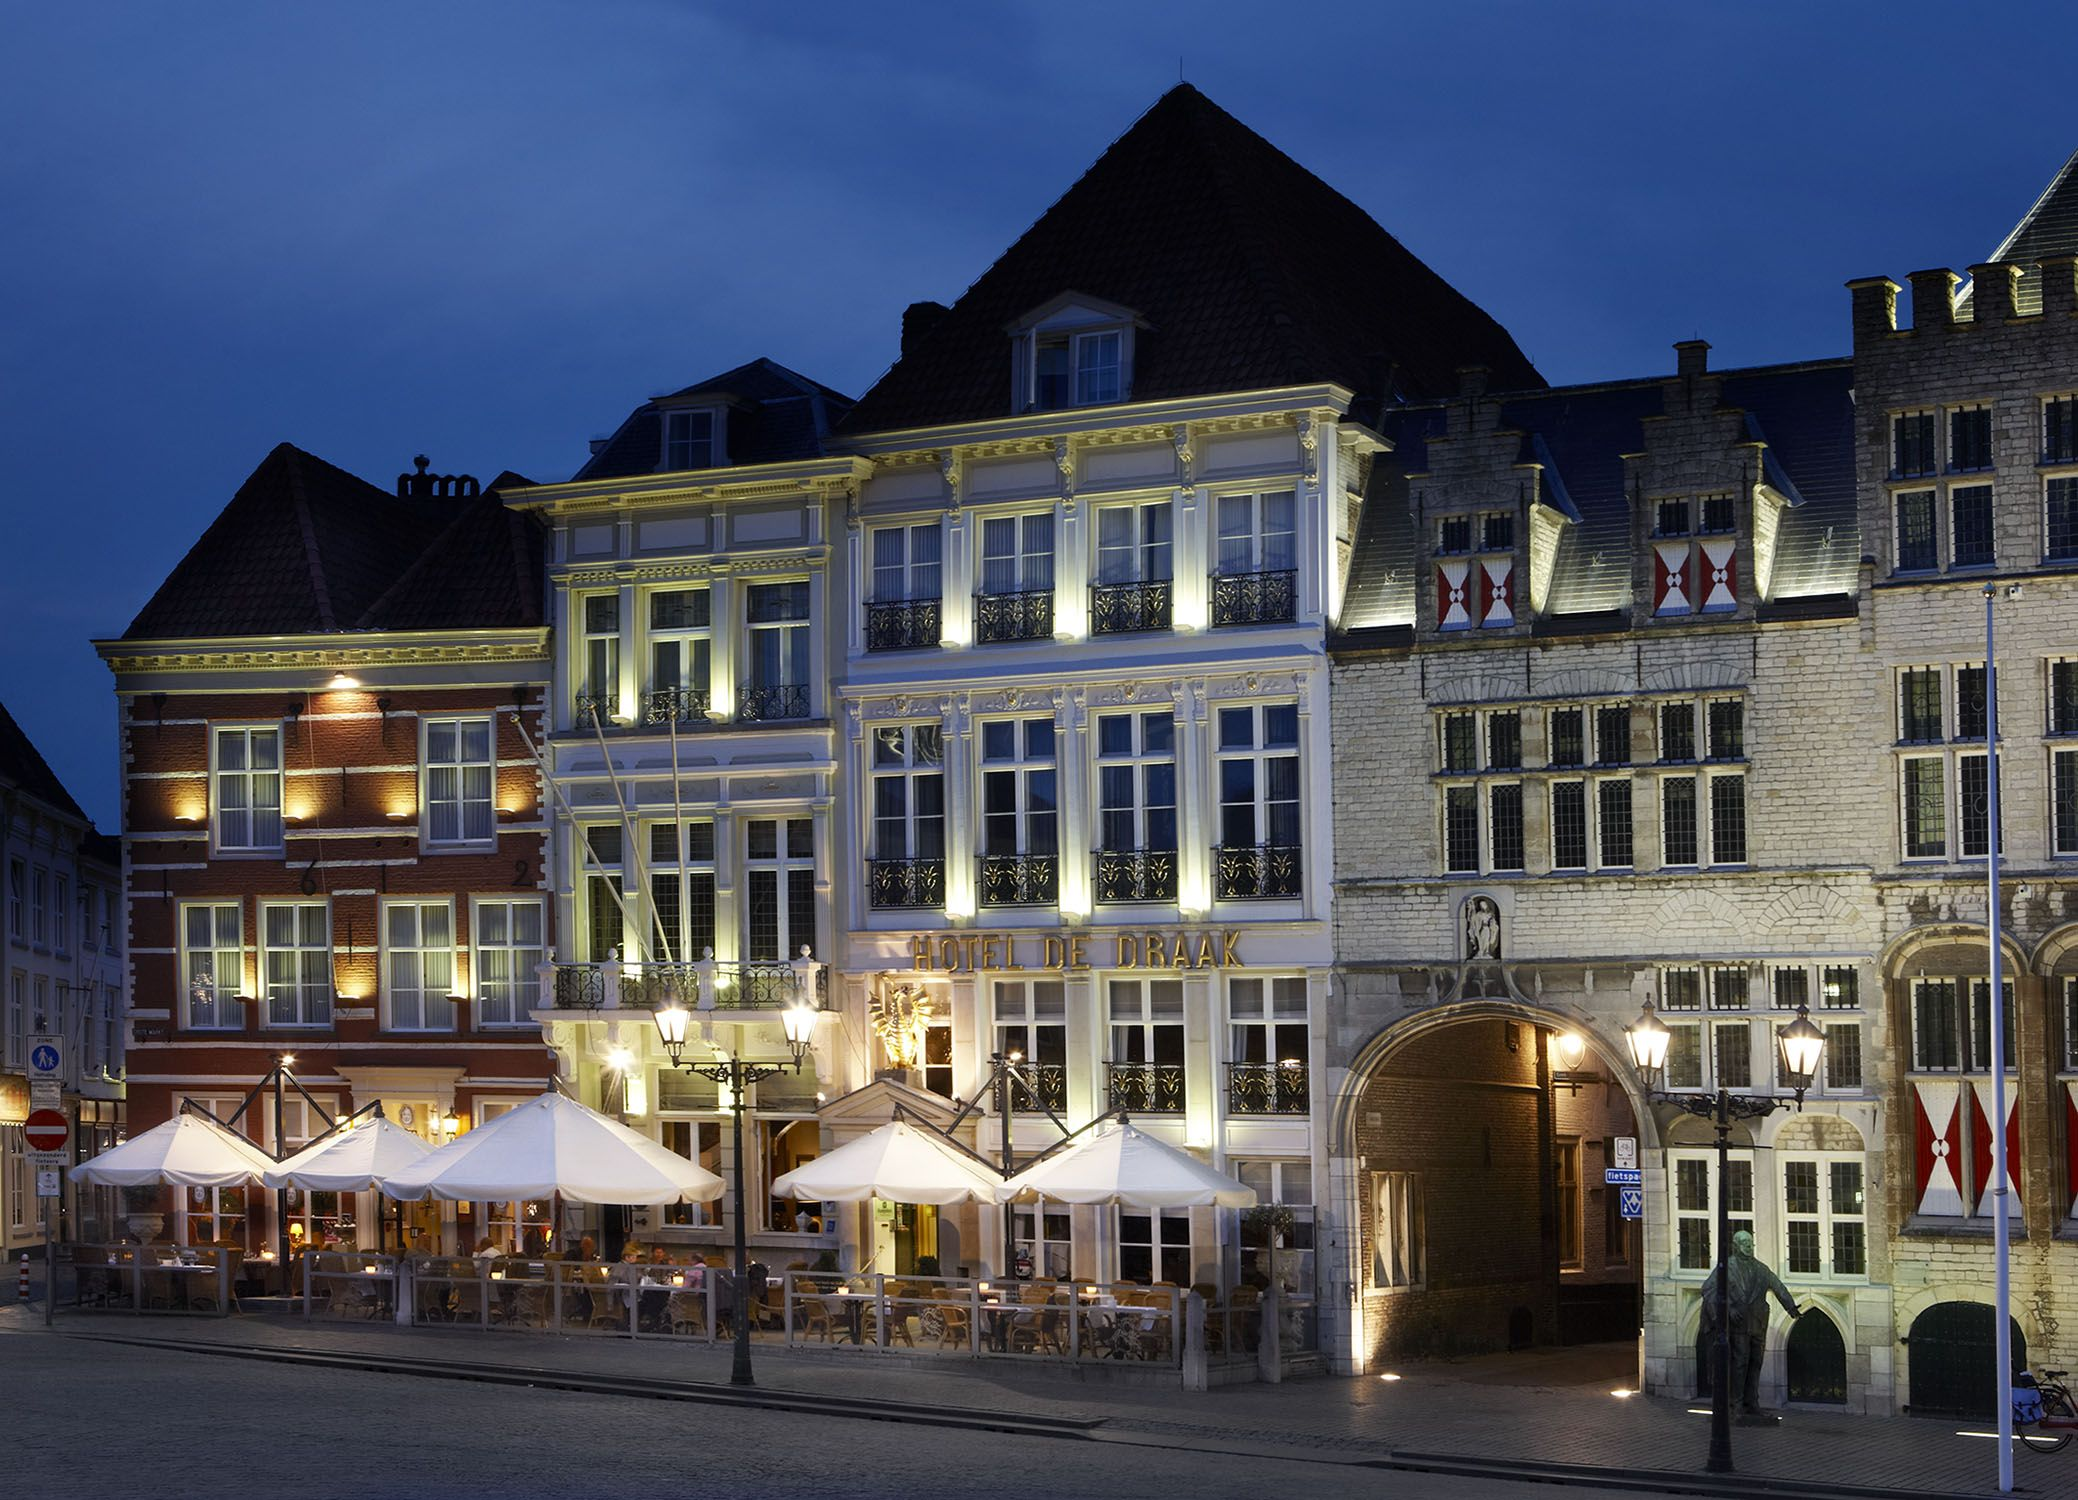 The oldest hotel of the Netherlands